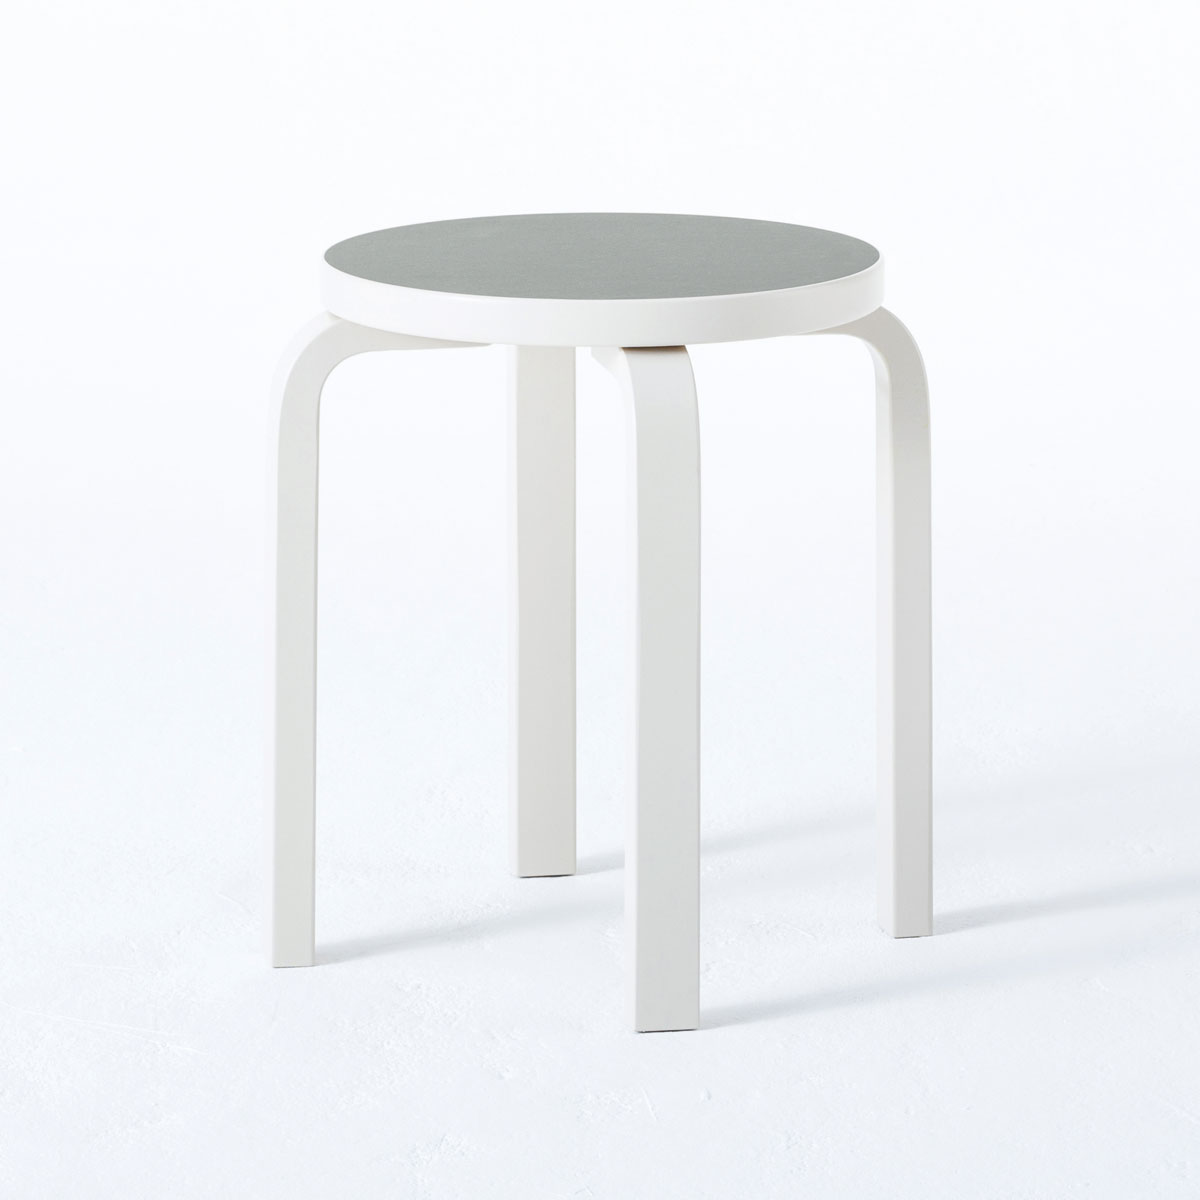 Admirable Artek Alvar Aalto Stone White Stool 60 Creativecarmelina Interior Chair Design Creativecarmelinacom